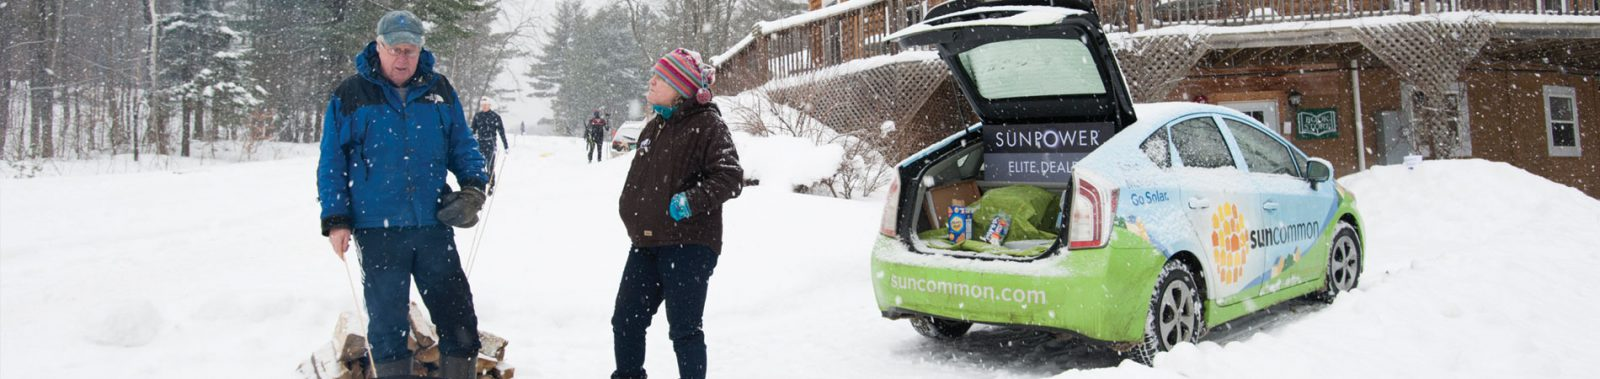 SunCommon car out in the snow